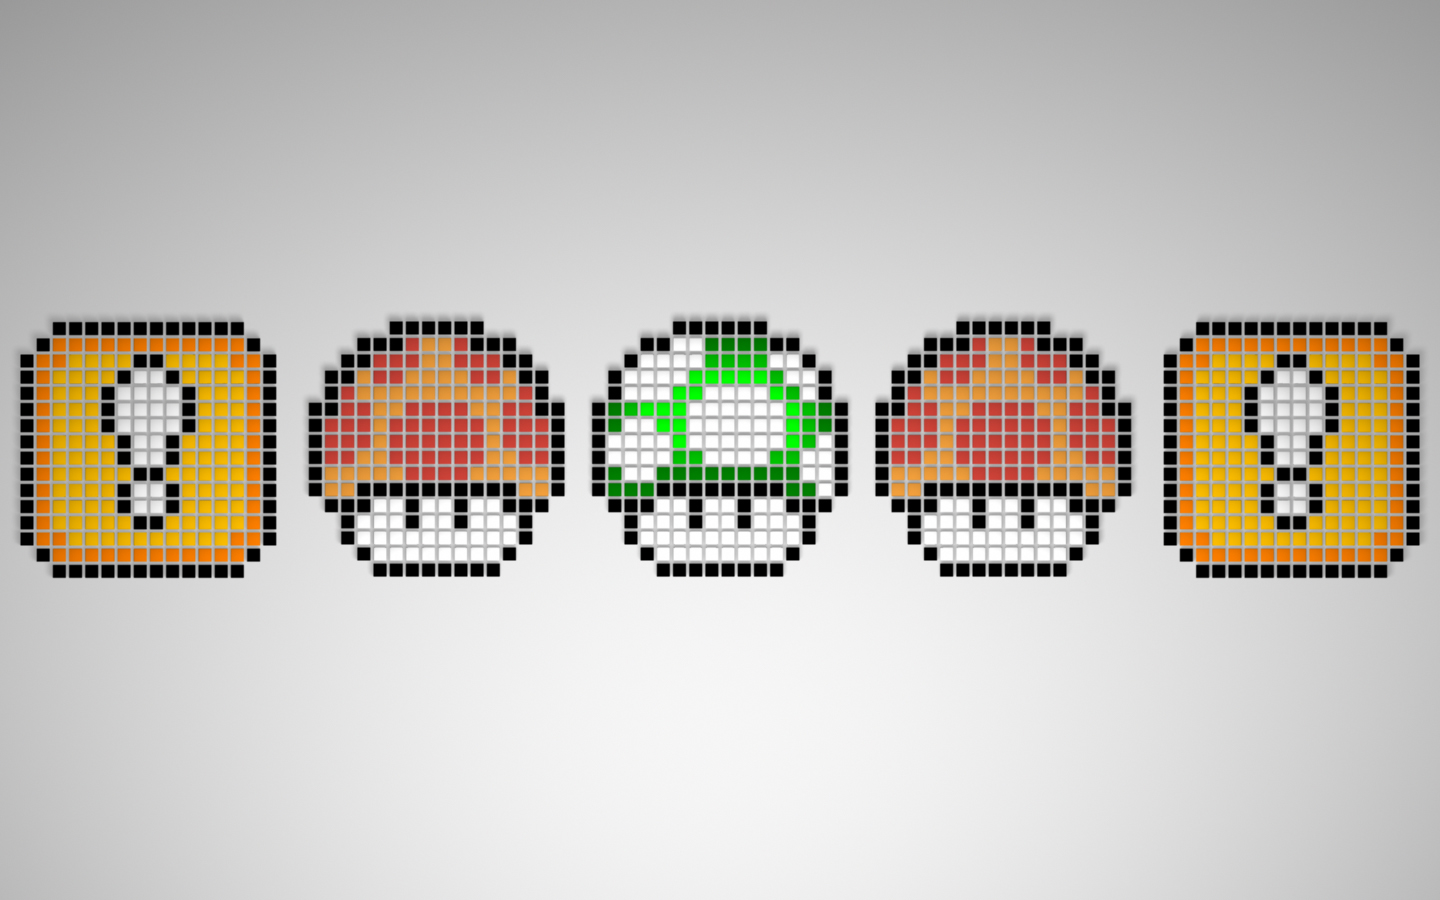 ... /s1600/8+bit+mario+mushroom+1up+green+red+wallpaper+background.jpg